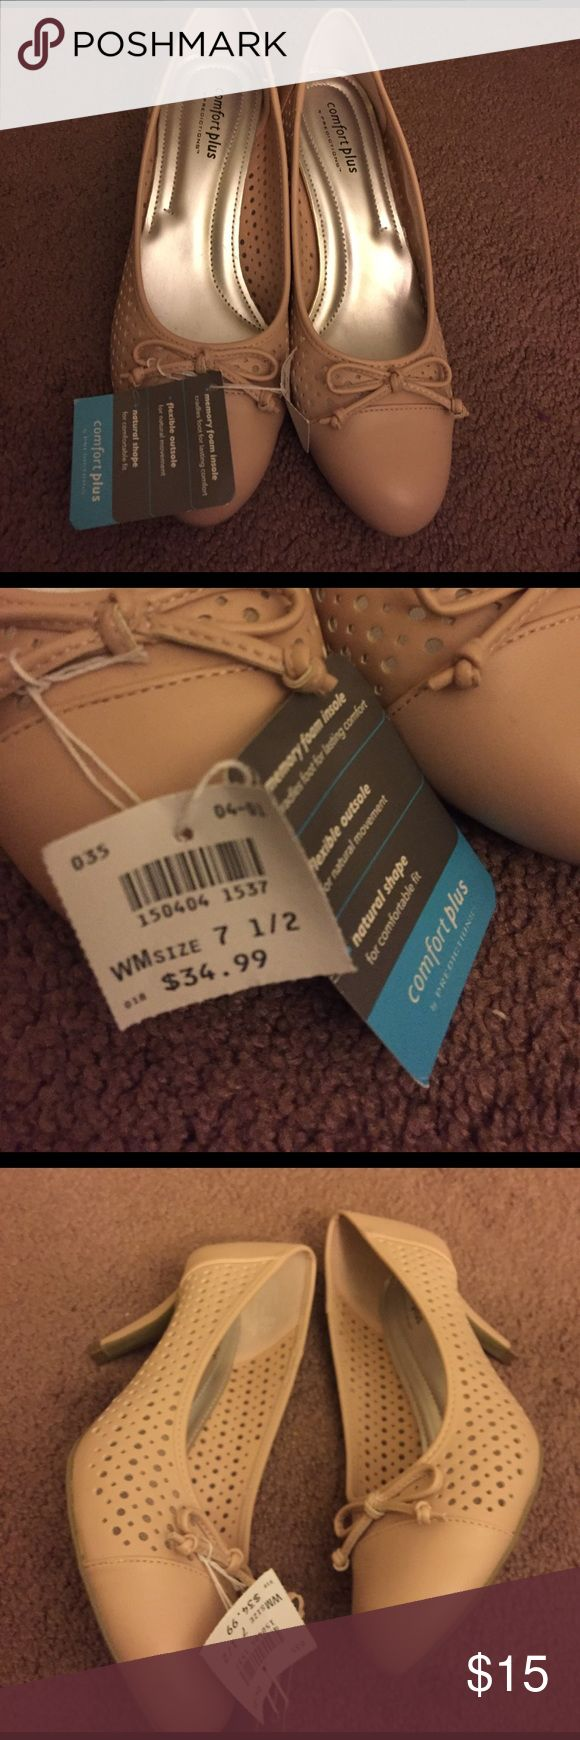 Comfort plus light pink heels NWT size 7.5 New with tags very comfortable light pink 2 inch heel with bow at toe . Perfect condition comfort plus by predictions  Shoes Heels